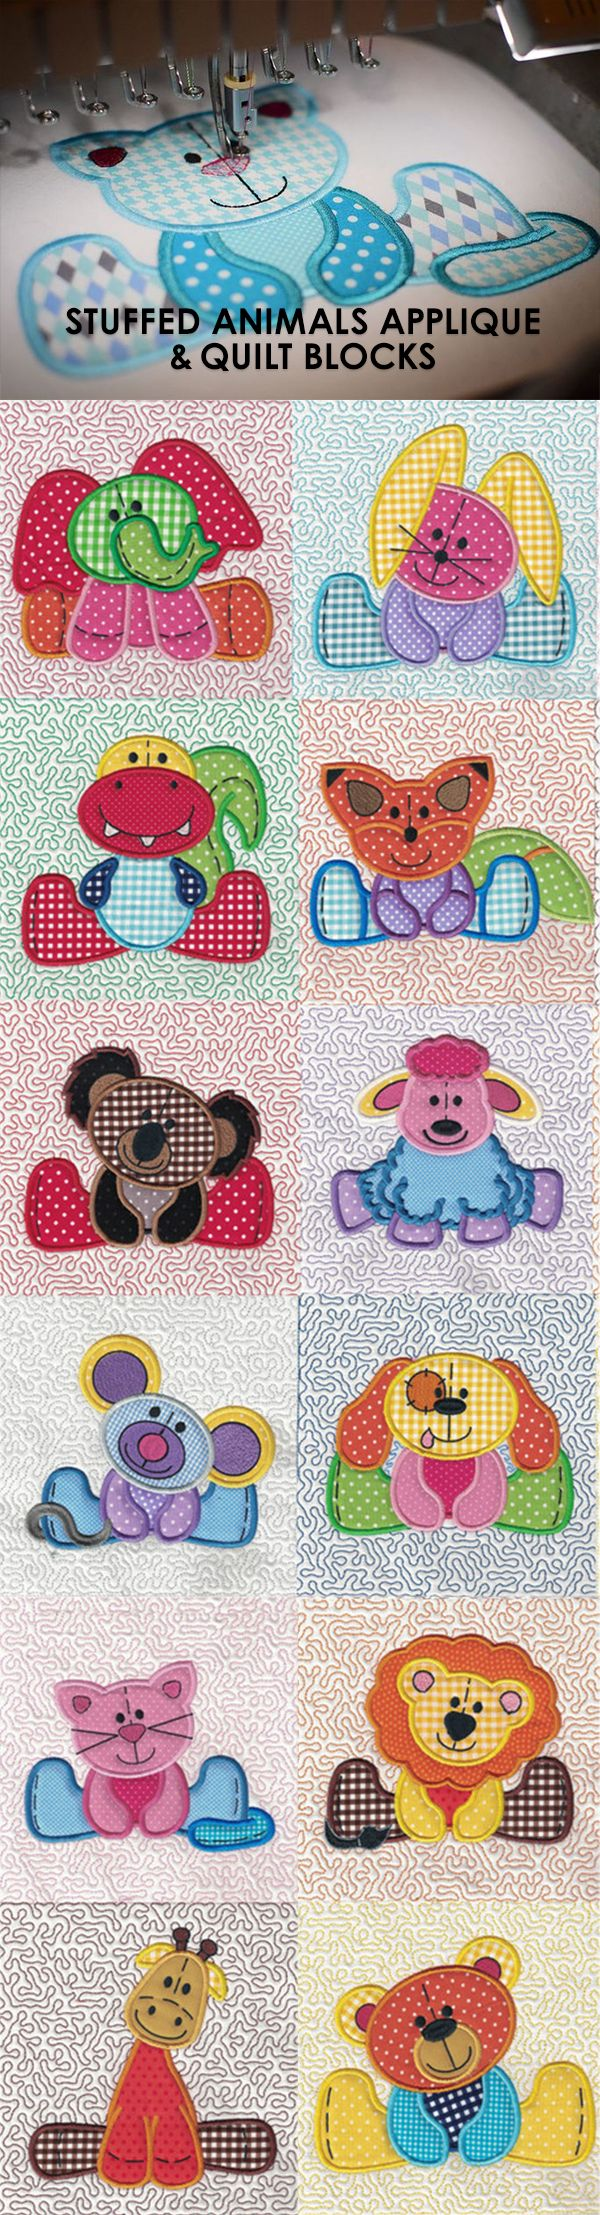 The Stuffed Animals Applique and Quilt Blocks is a seriously adorable set perfect for the little ones in your life! Available as just an applique and w/ a stipple background. Available for instant download at www.designsbyjuju.com